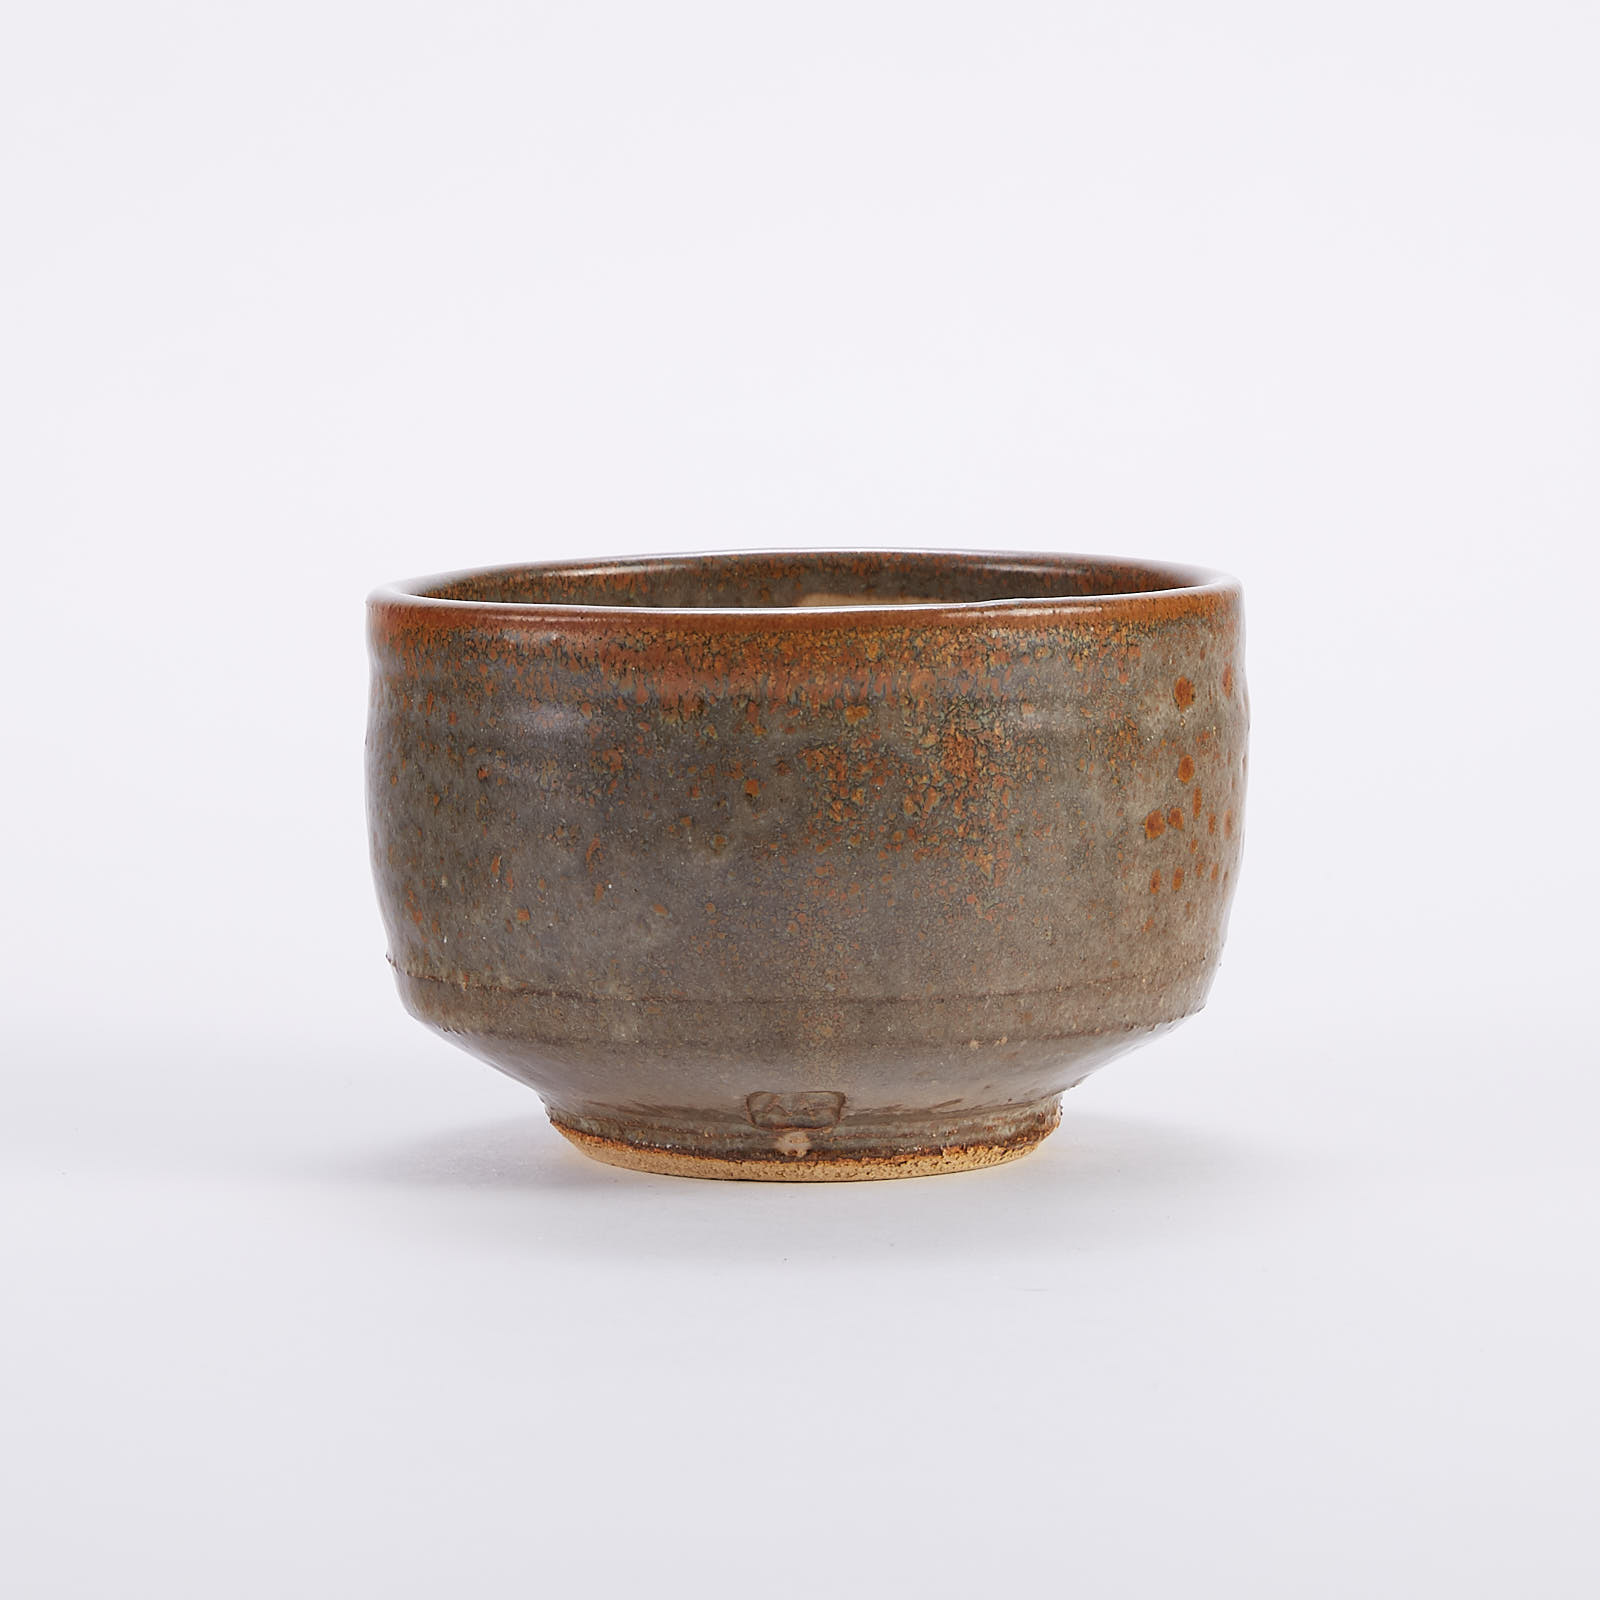 Lot 004: Warren MacKenzie Studio Pottery Bowl Marked